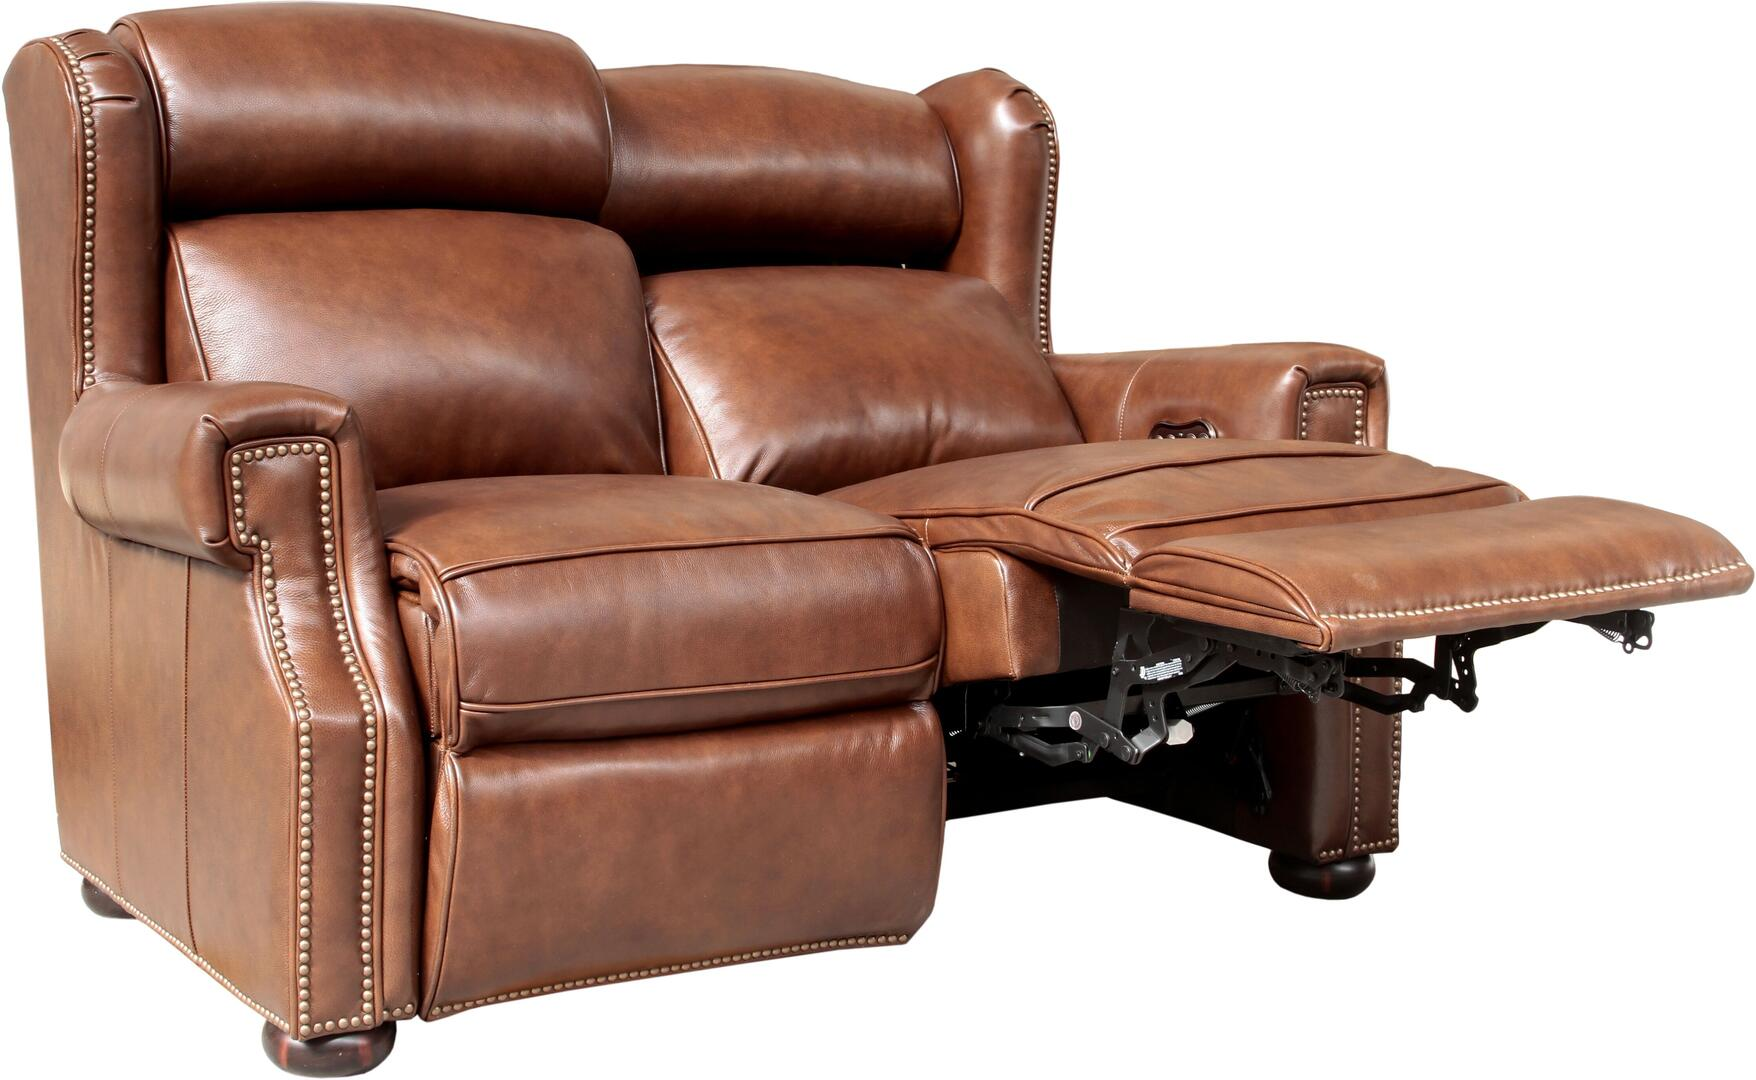 Terrific 5 Best Recliners From Barcalounger Appliances Connection Ncnpc Chair Design For Home Ncnpcorg